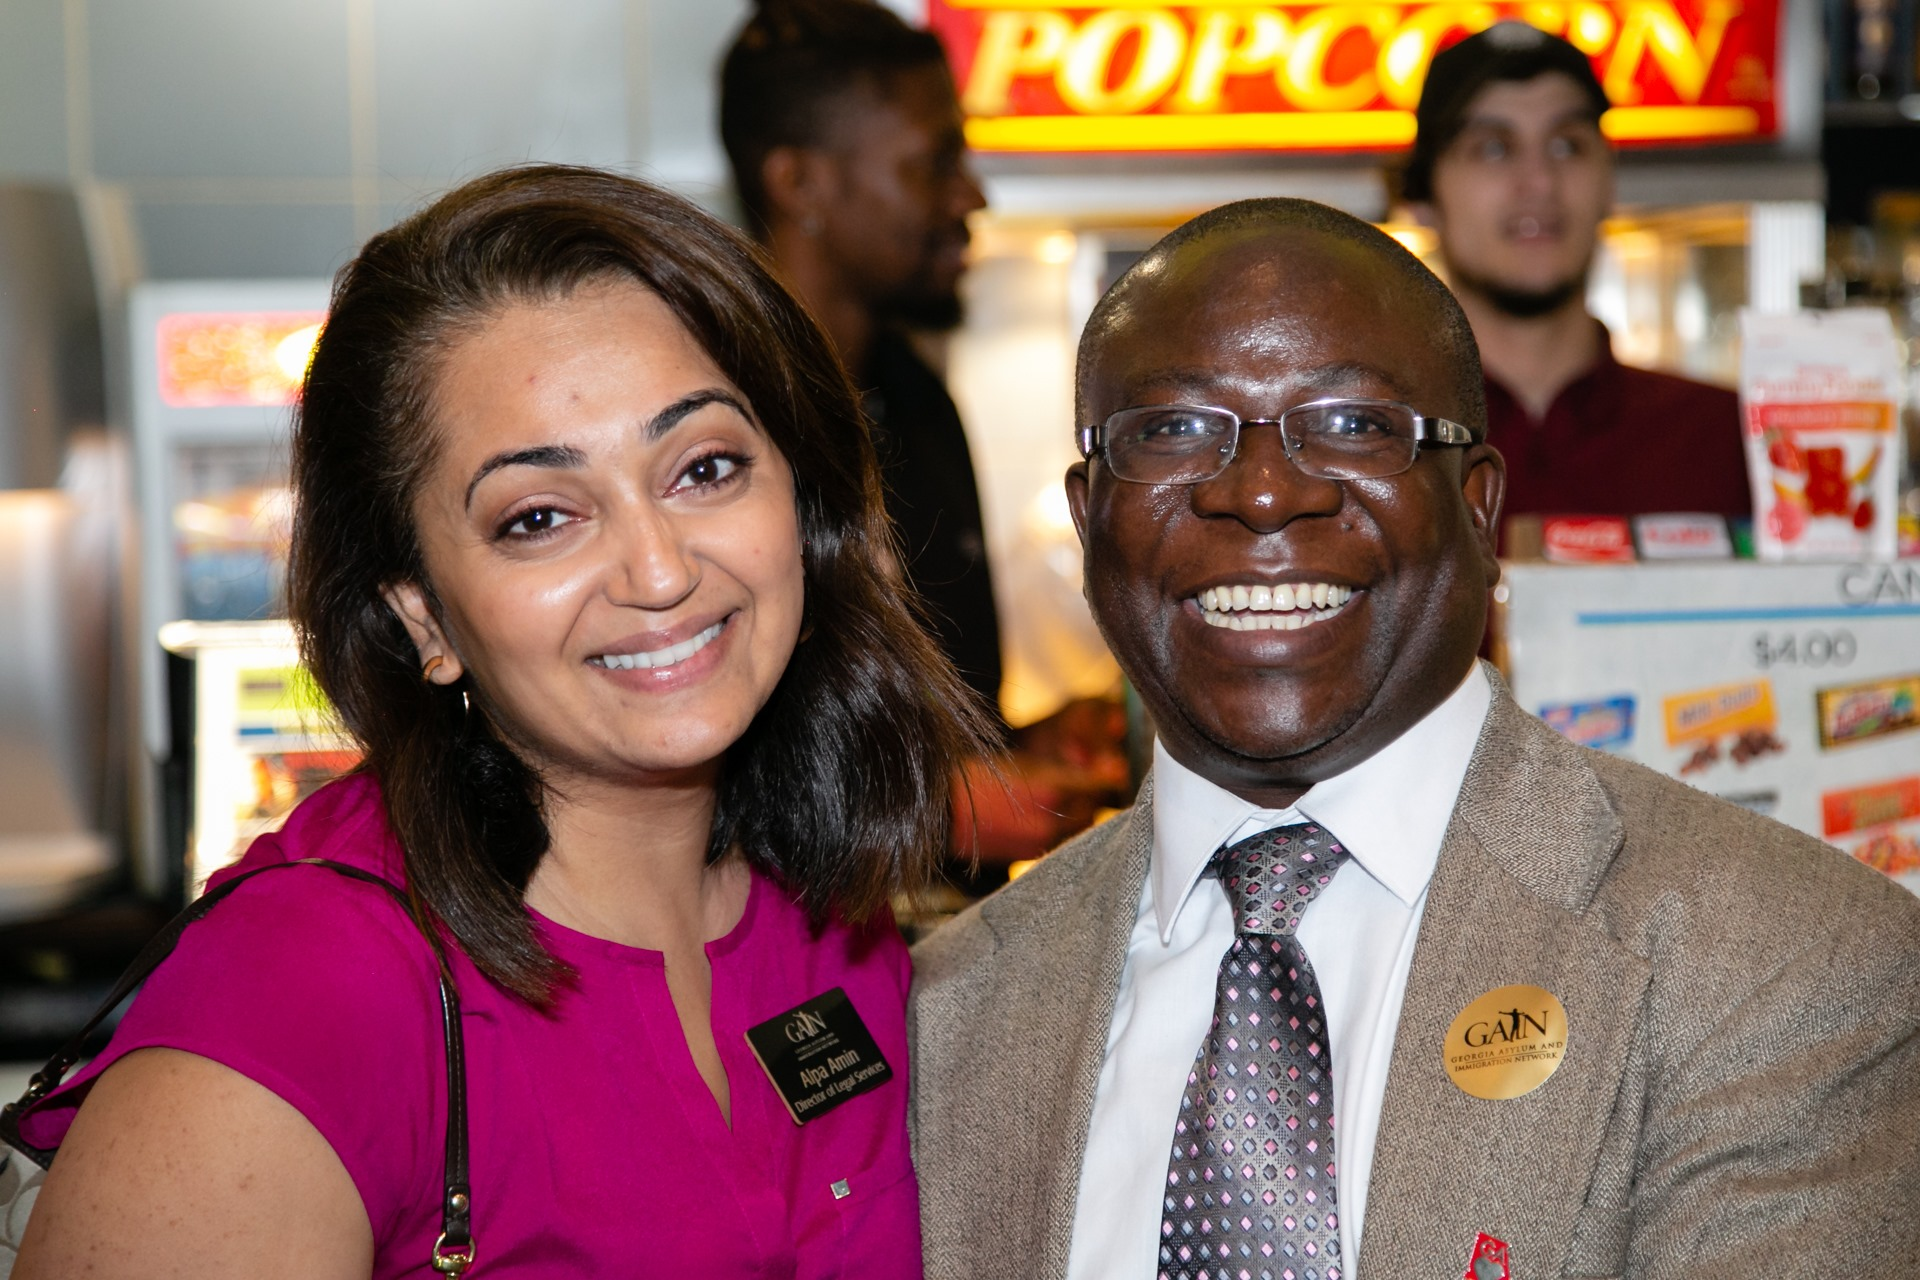 Two people, a South Asian woman and a Black man, stand next to each other, smiling.